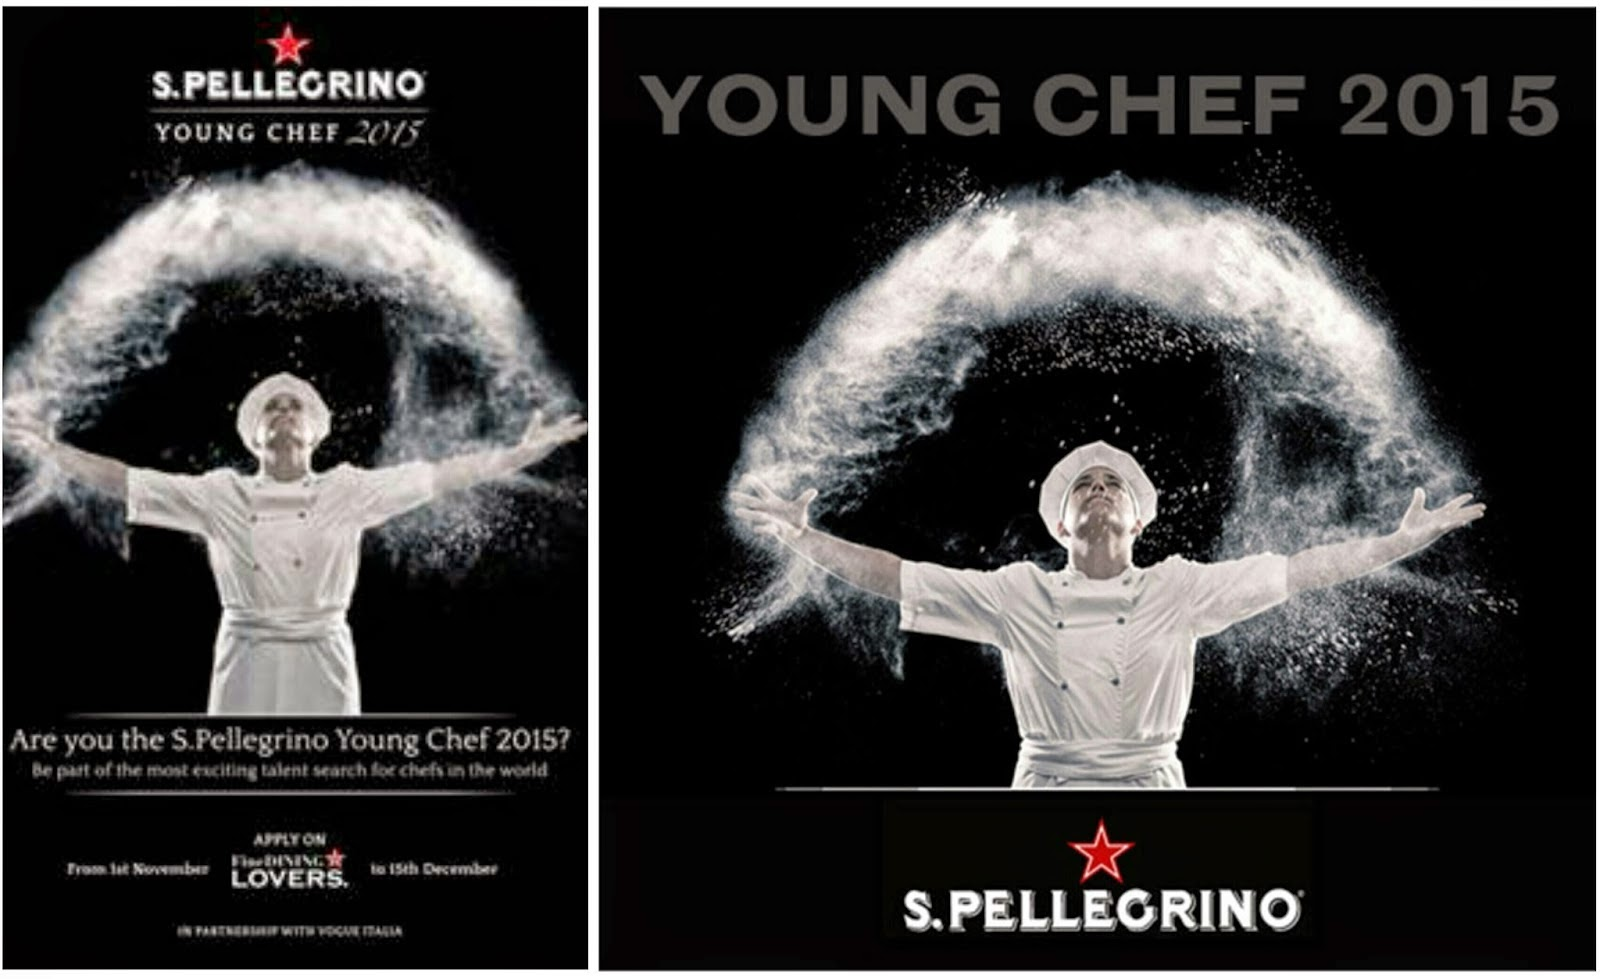 SPellegrino Young Chef